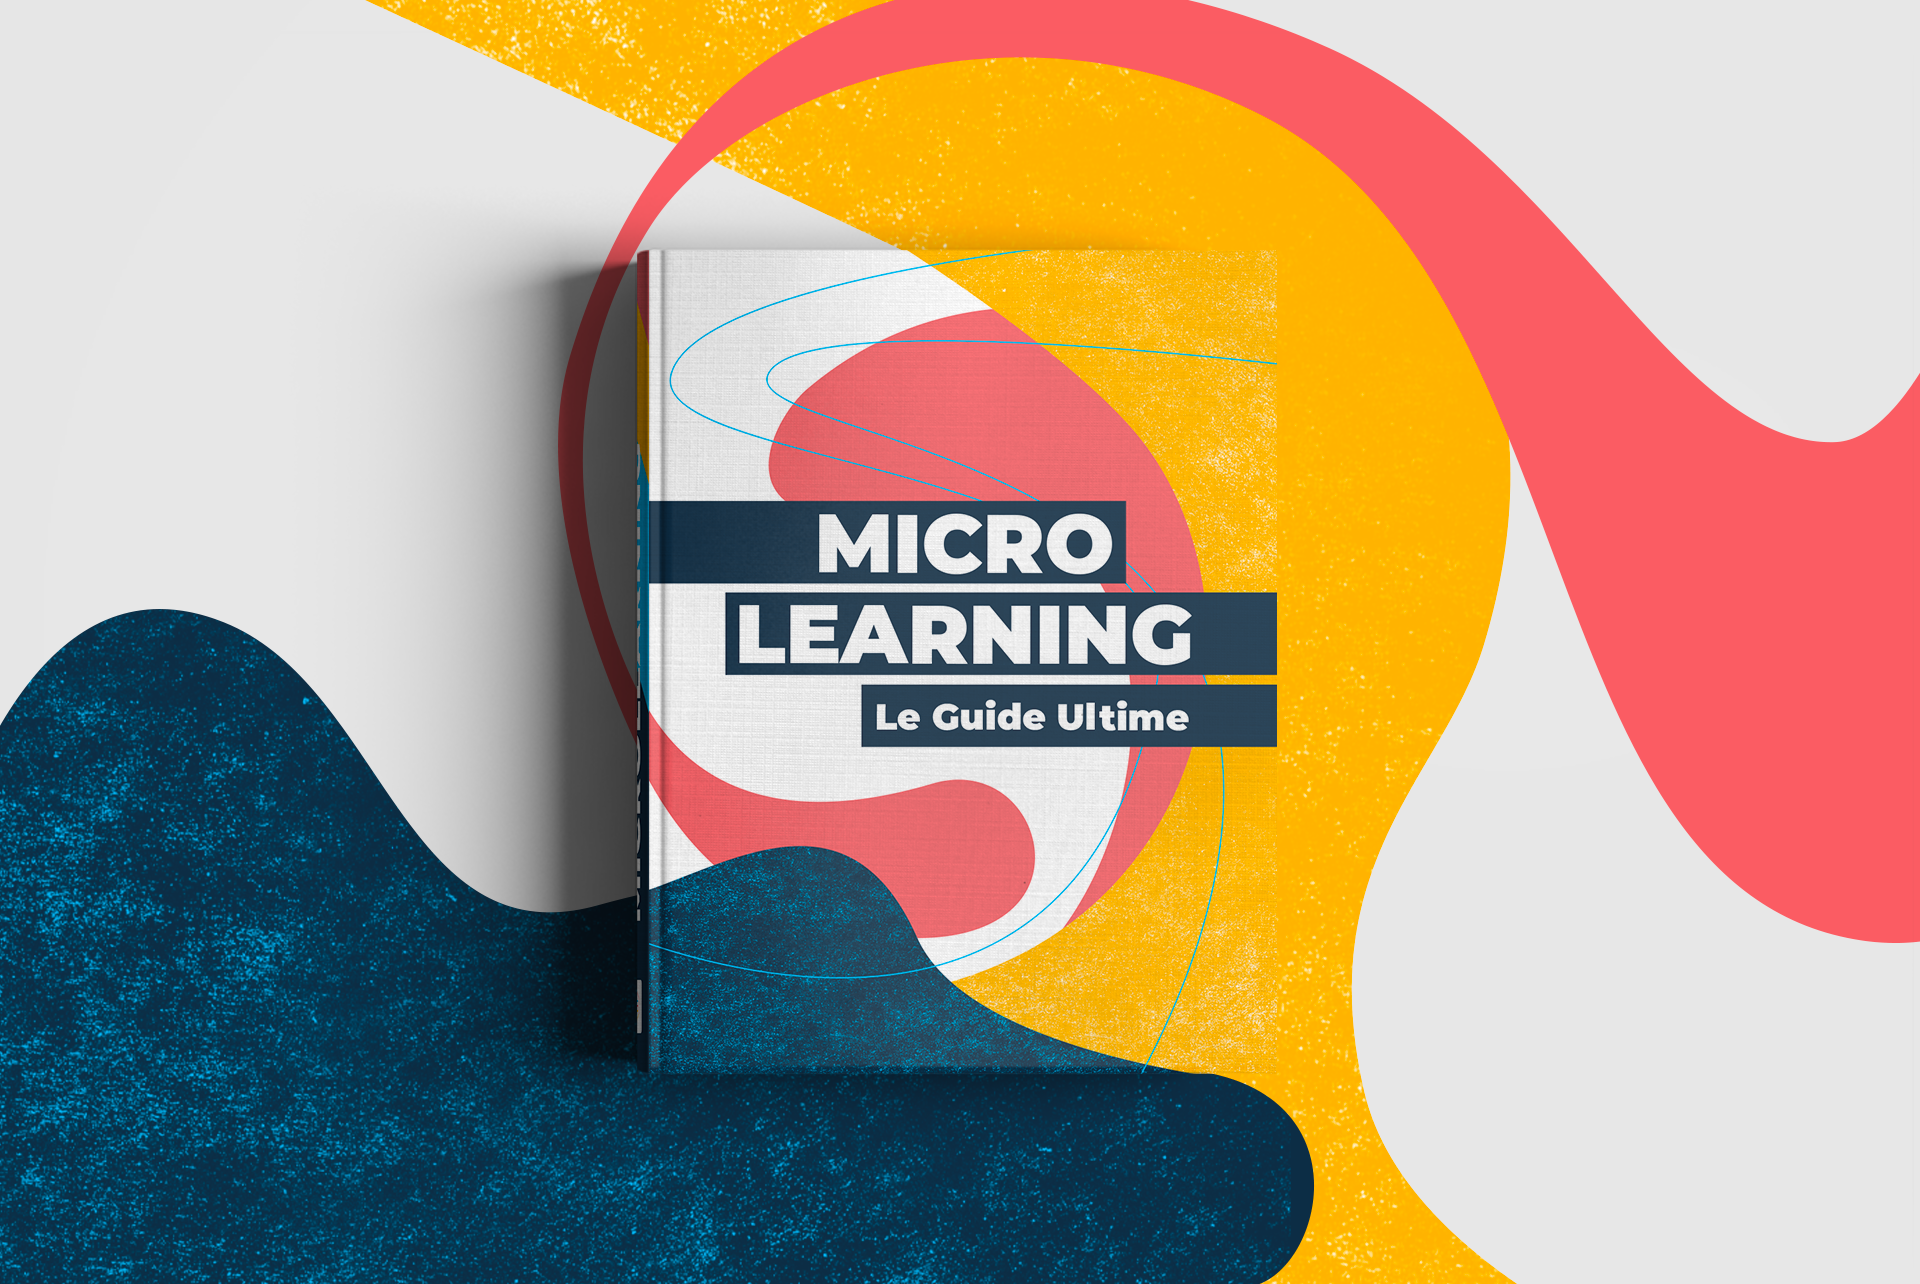 microlearning-guide-ultime